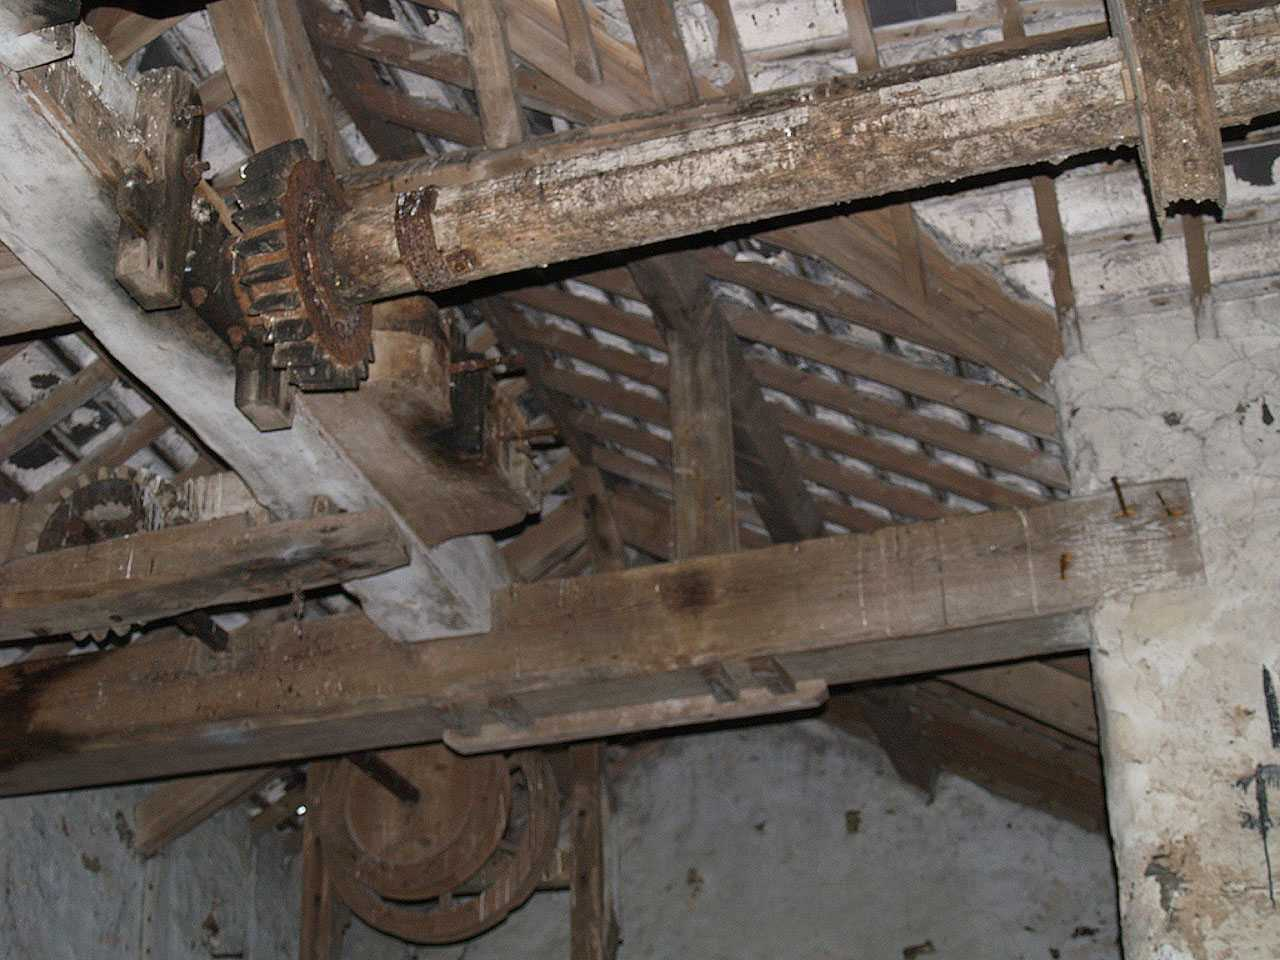 Aberffraw, Melin Y Traeth Water Mill. Internal Workings - shafts and cogs